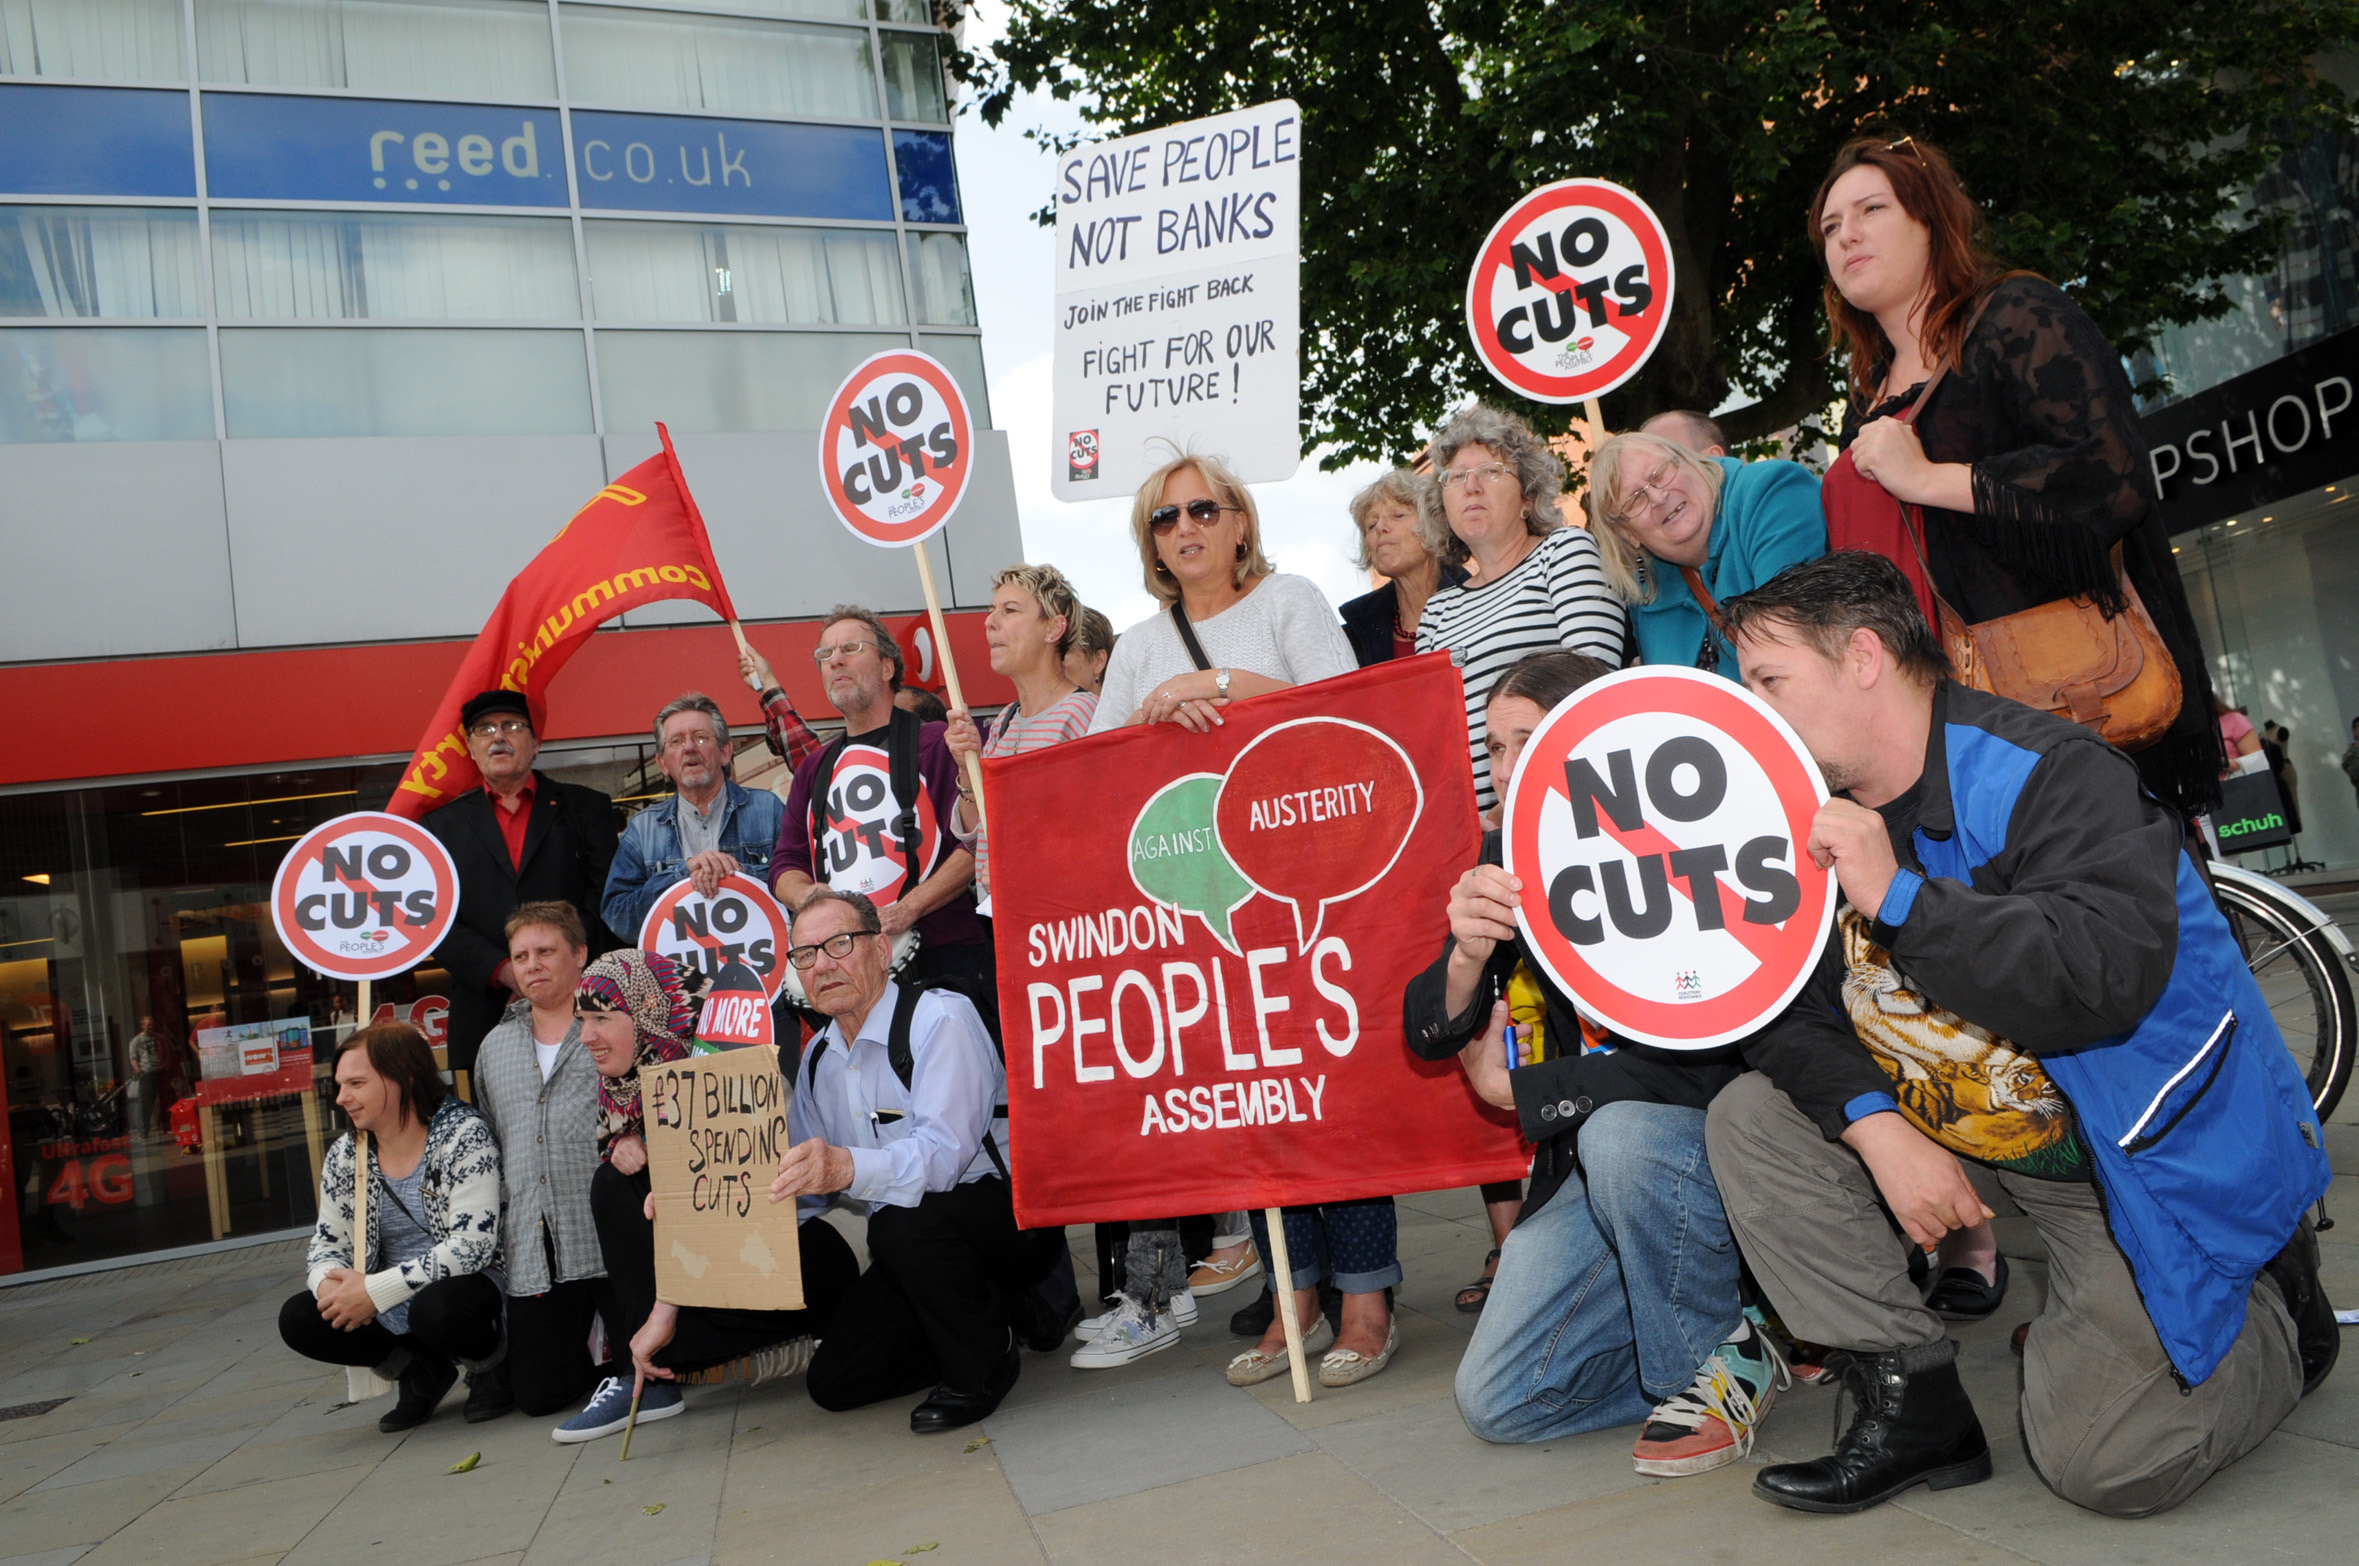 A Swindon People's Assembly protest in the town centre